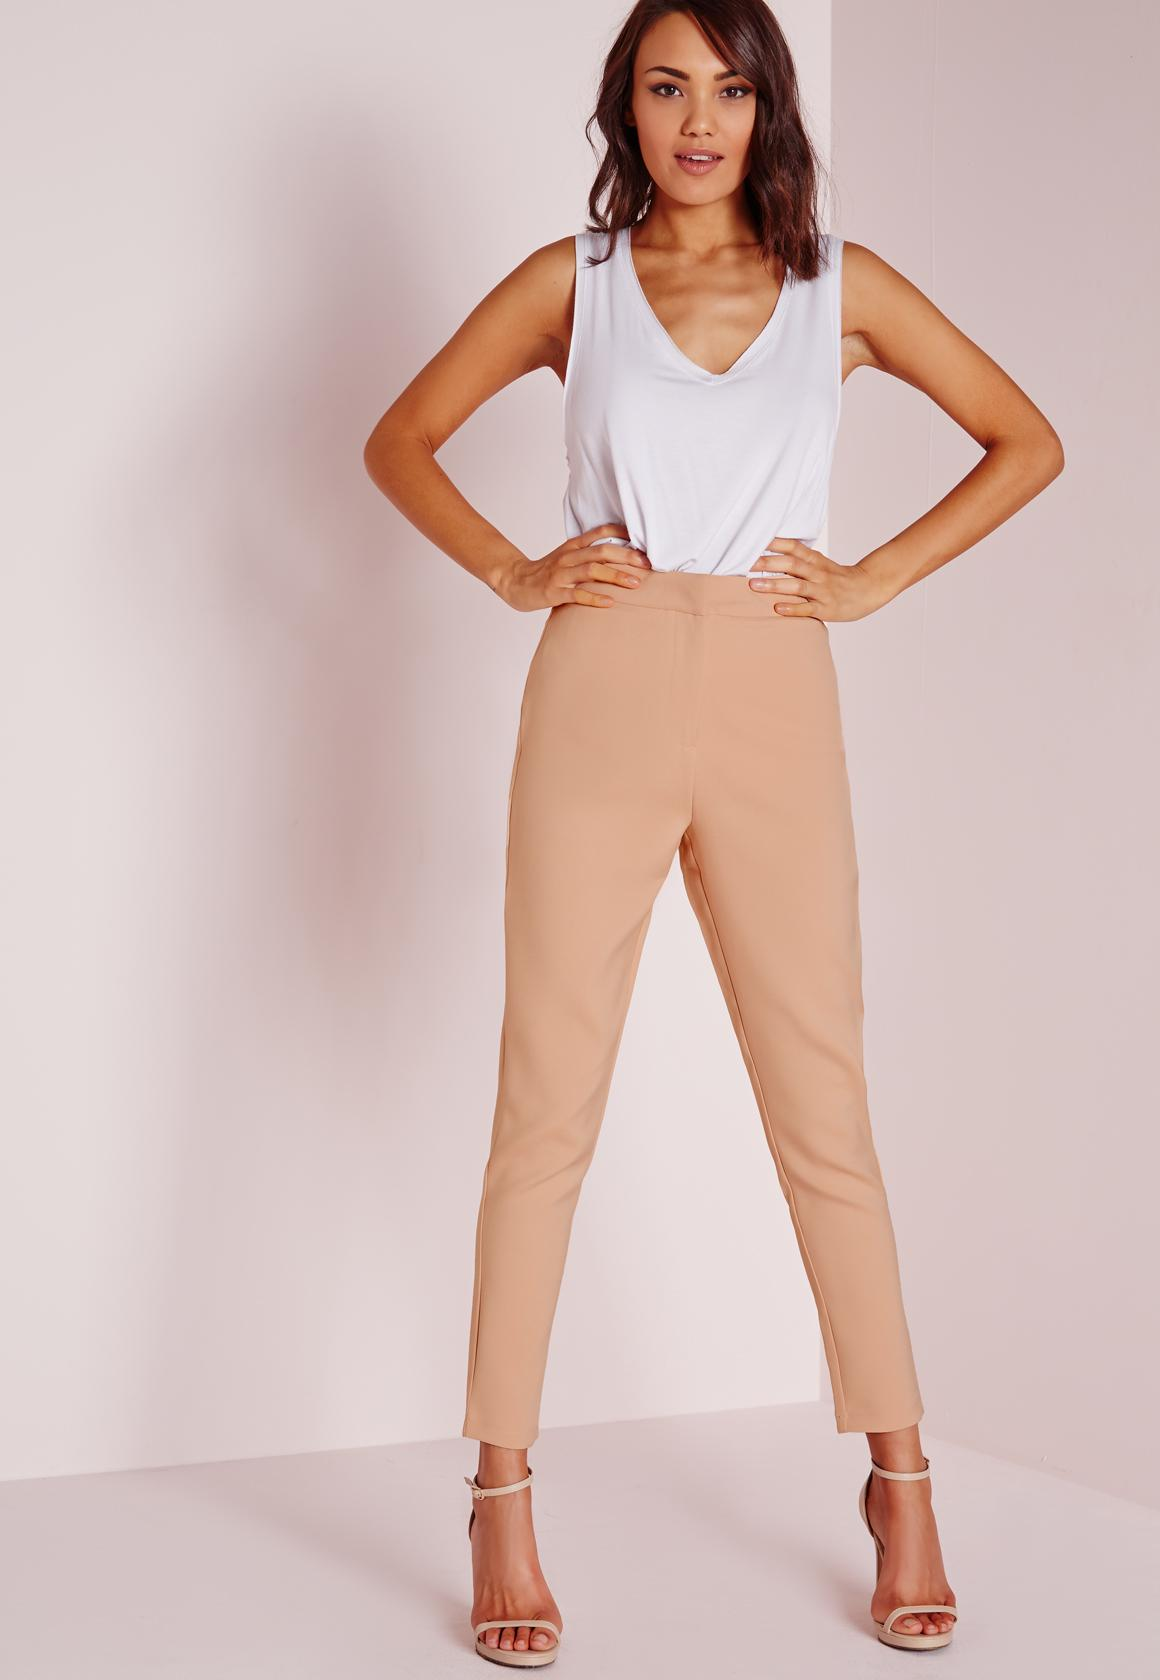 Discount Ebay Missguided Nude Cigarette Trousers Clearance Recommend PXx3zsFk